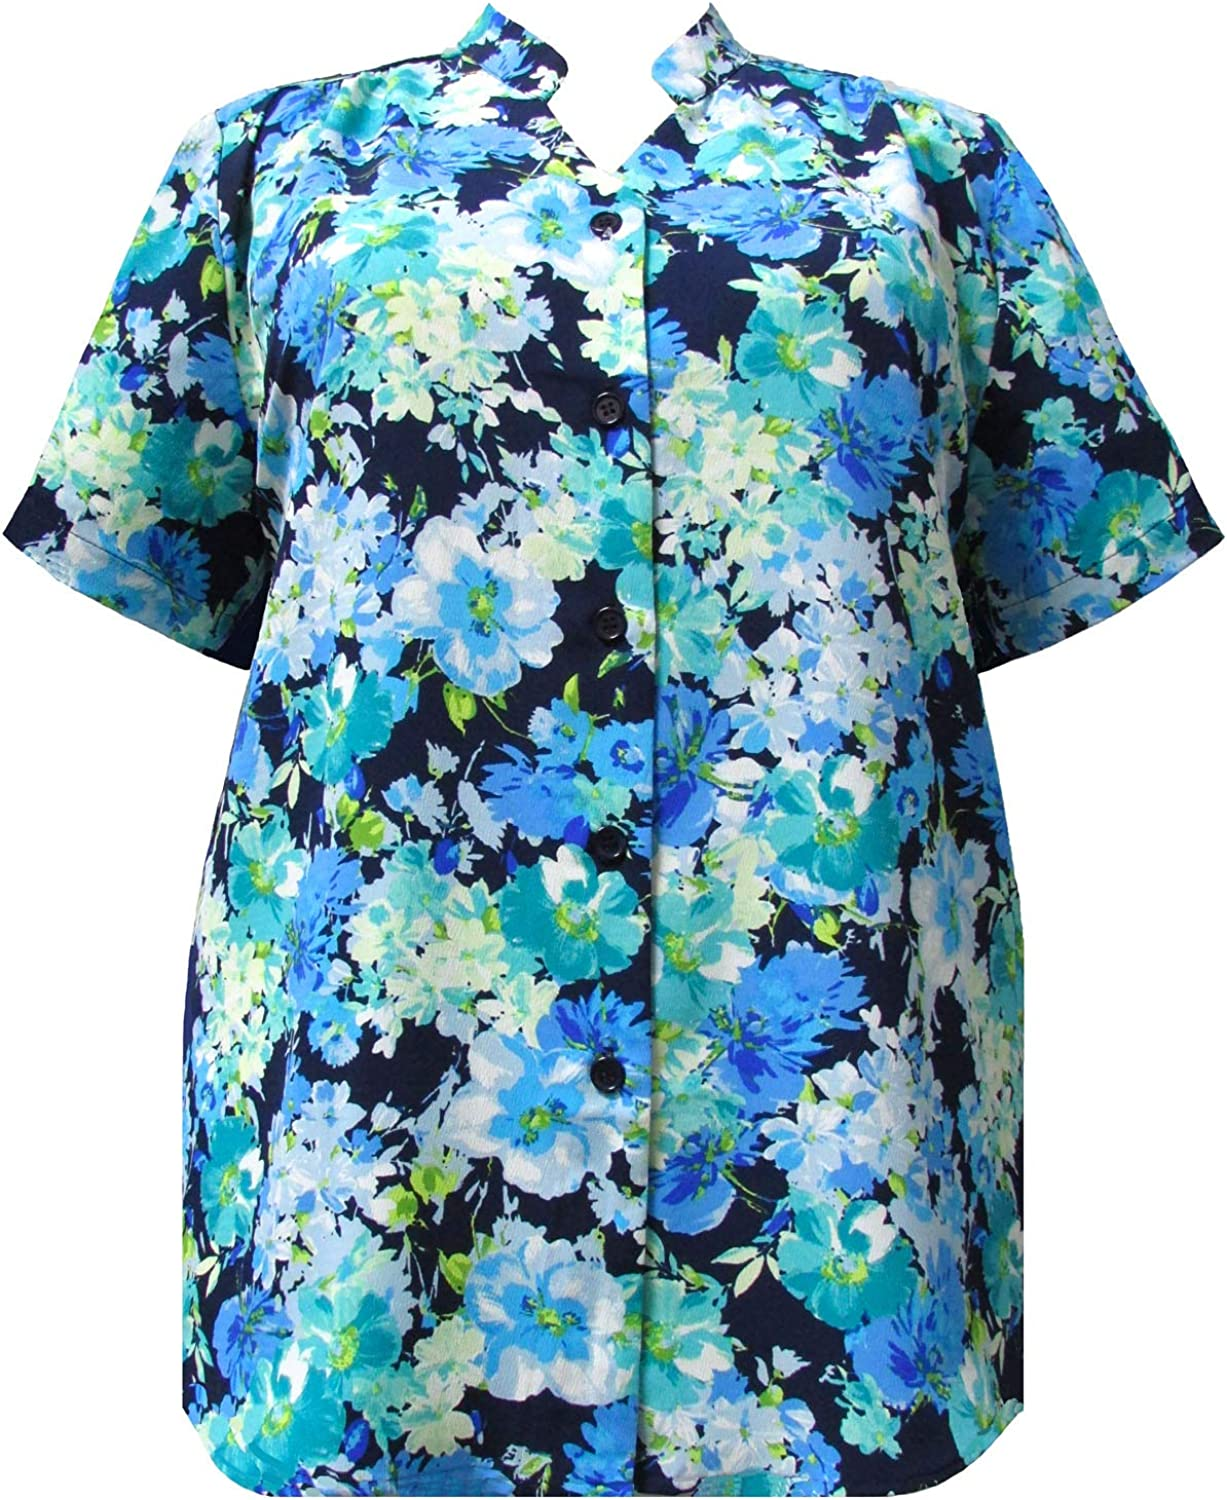 A Personal Touch Women's Plus Collar Sleeve Mandarin Max 86% Ranking TOP7 OFF Short Size